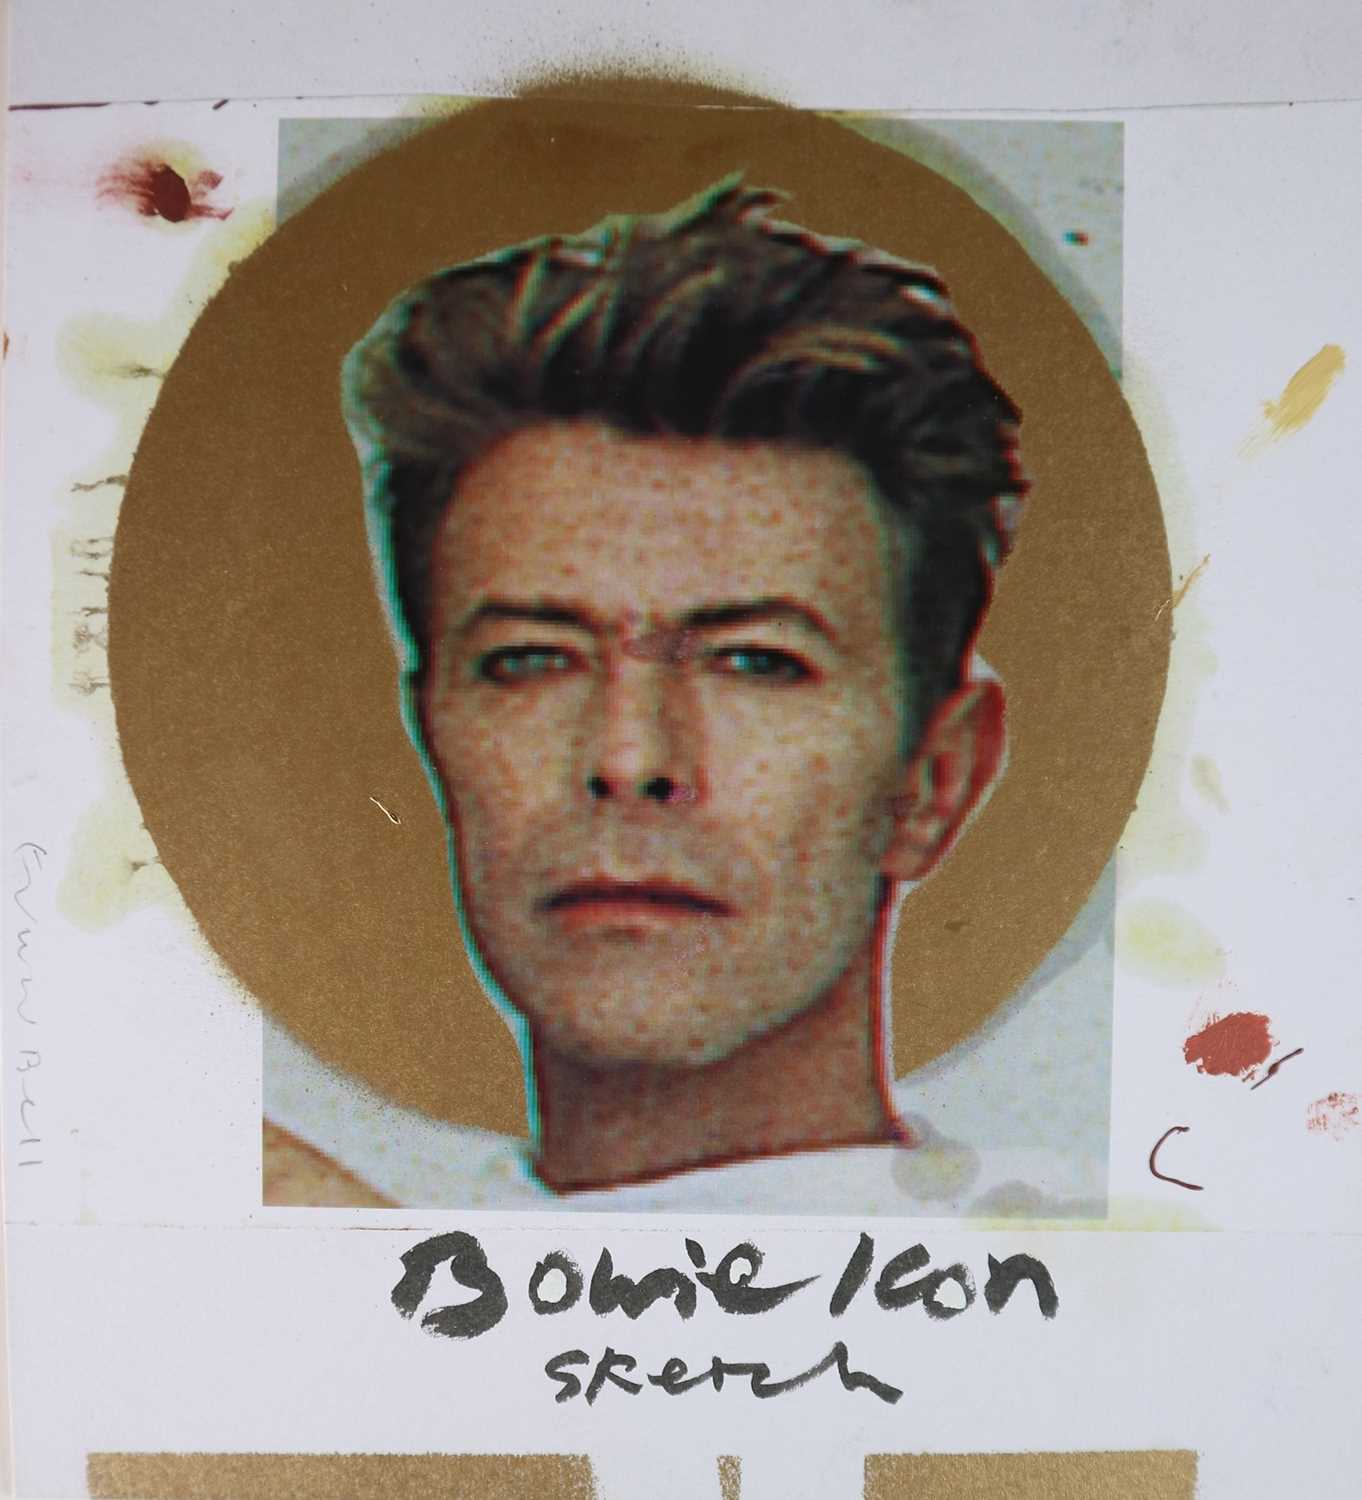 Edward Bell (British Contemporary) Bowie Icon Sketch - Image 3 of 5